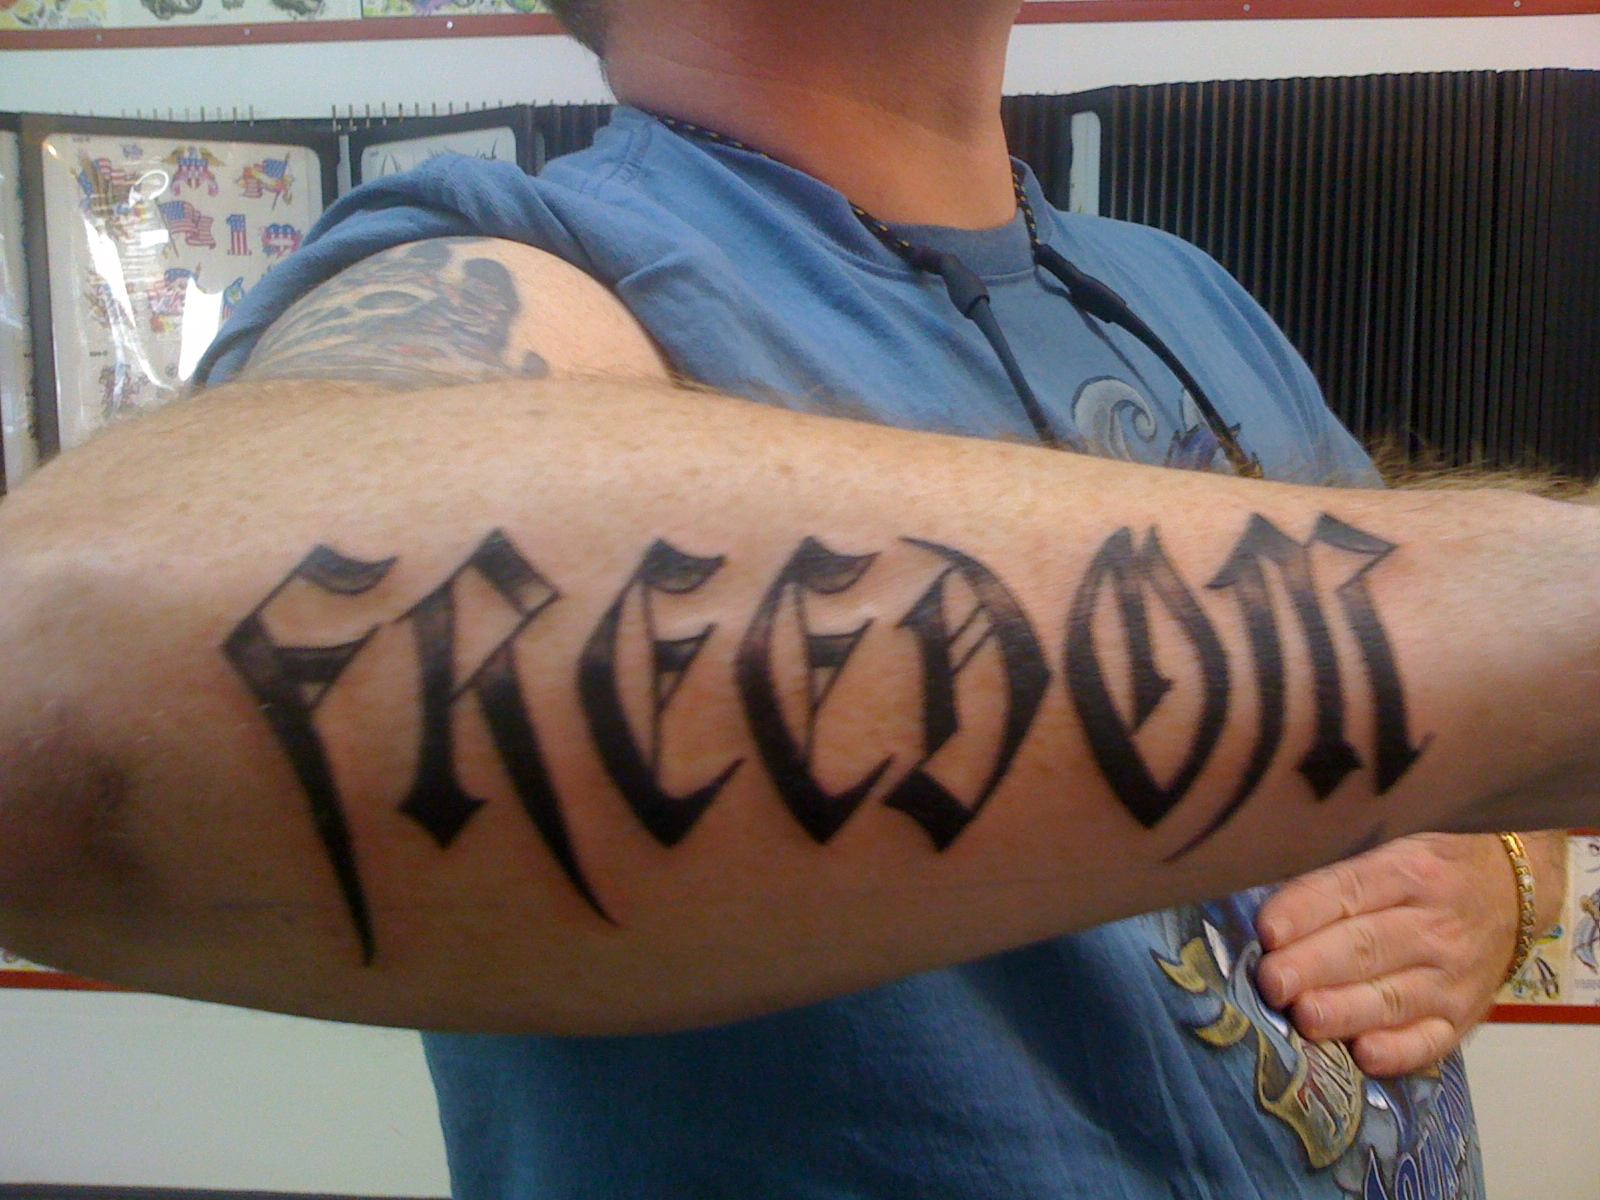 Ambigram Tattoos Designs Ideas And Meaning Tattoos For You Ideas And Designs